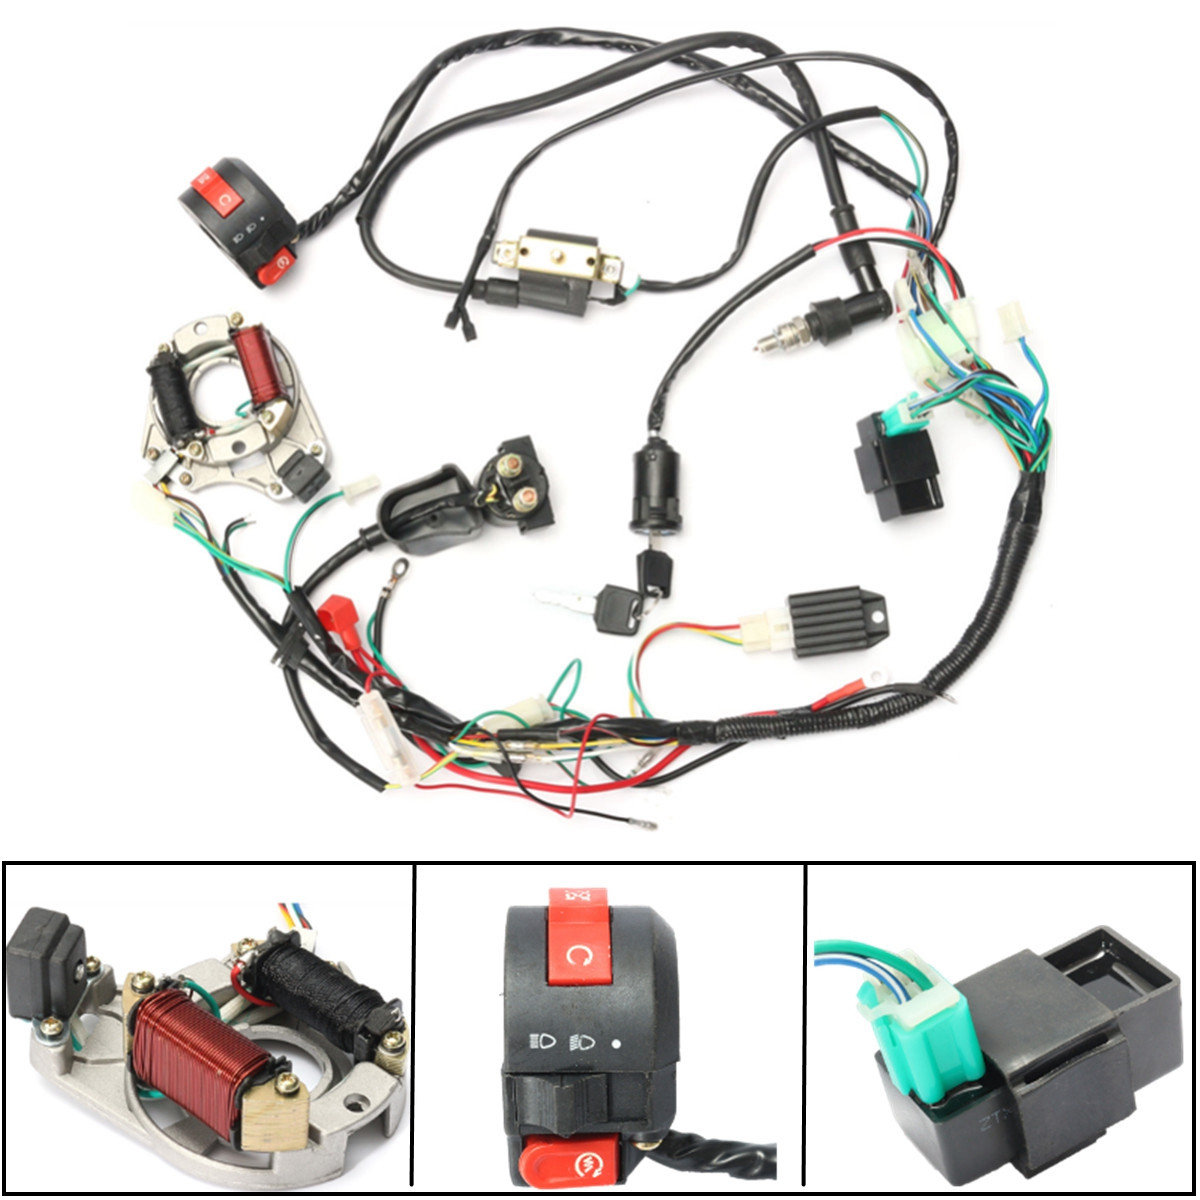 CDI Ignition Coil Wire Harness Stator Assembly Wiring for ATV Electric Quad 50CC 70CC 90CC 110CC 125CC